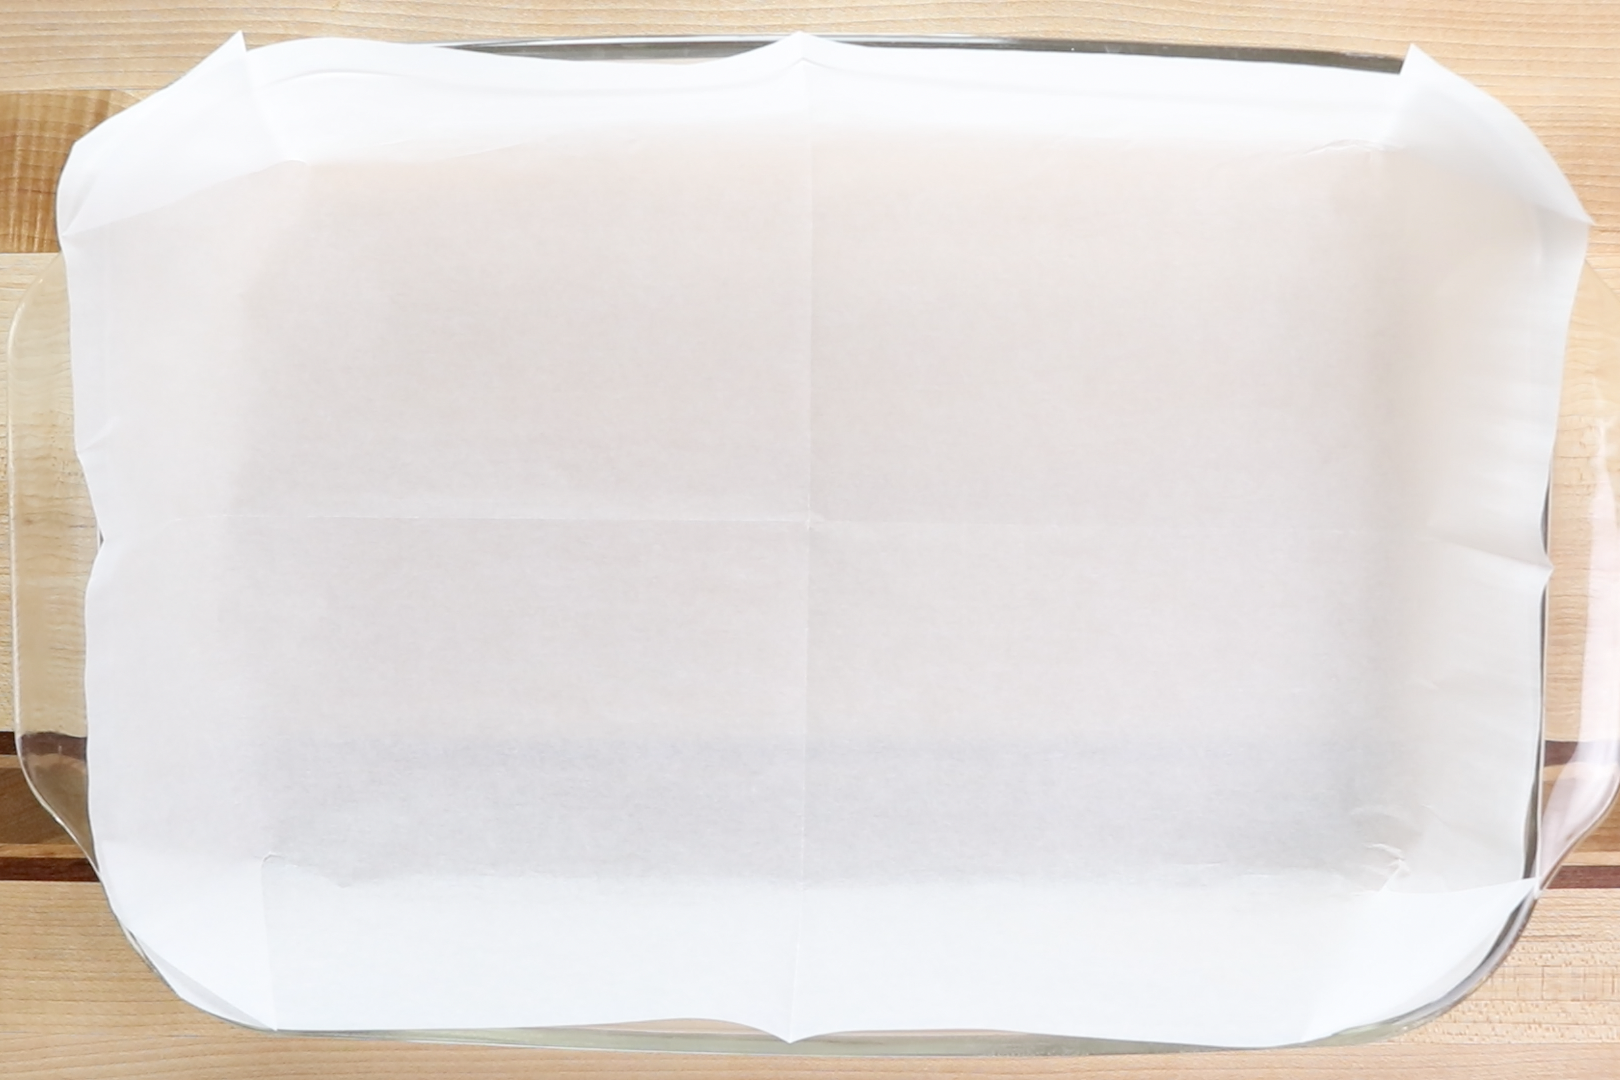 1. Preheat oven to 350 degrees. Prepare a 9x13-inch baking pan with parchment paper. -